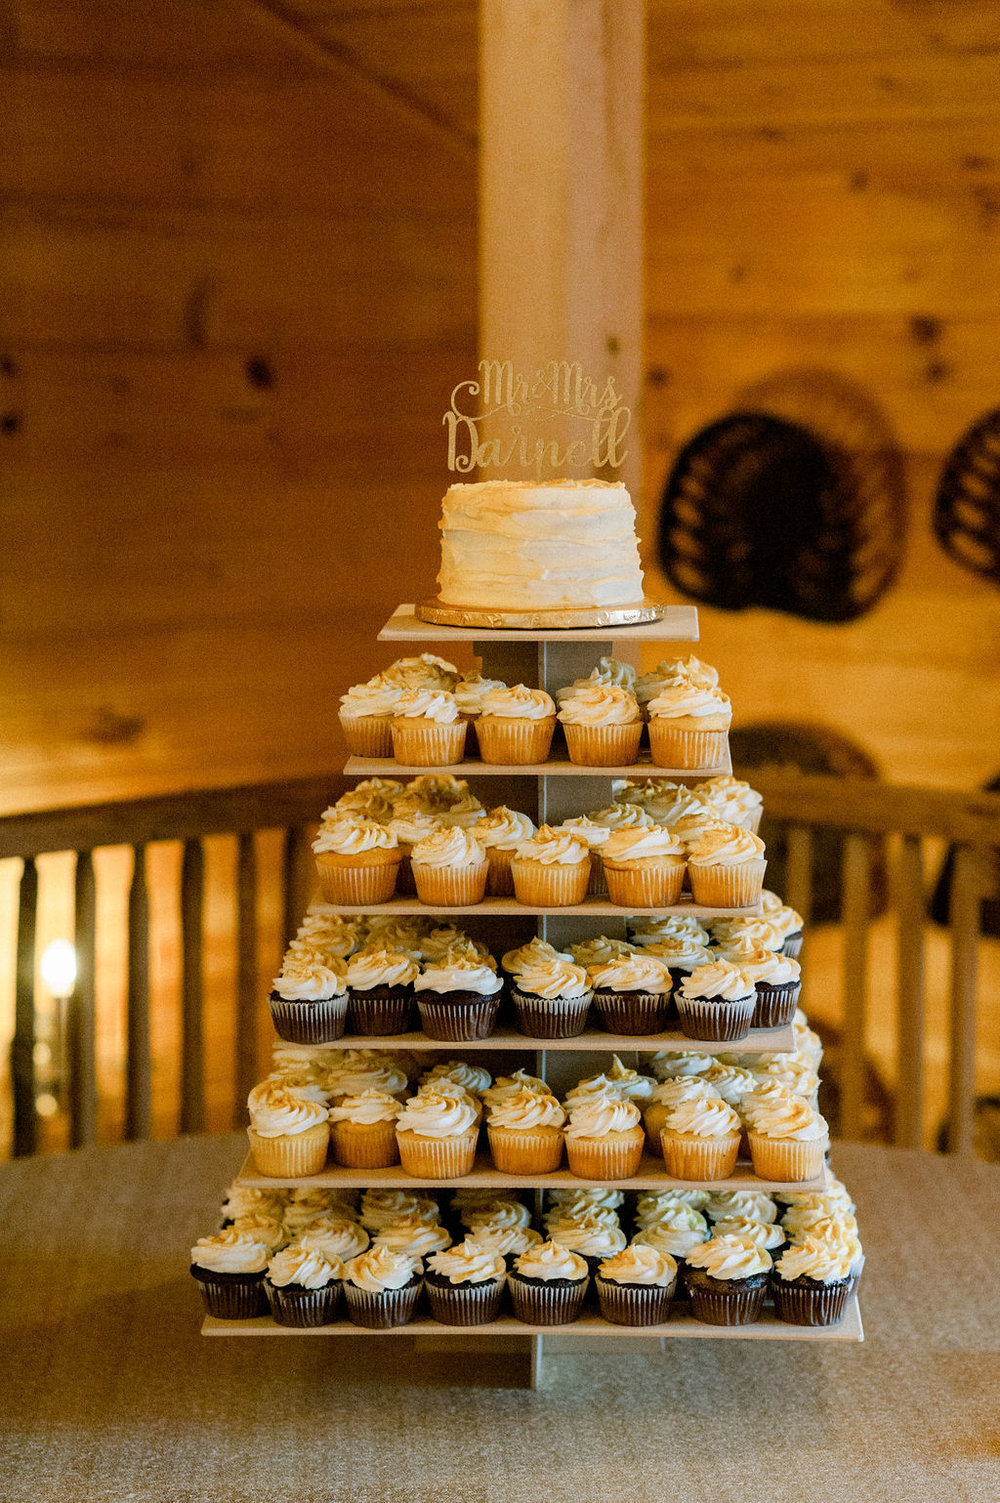 TaylorAlex_StoneRidgeHollow_Wedding_Details-17.jpg